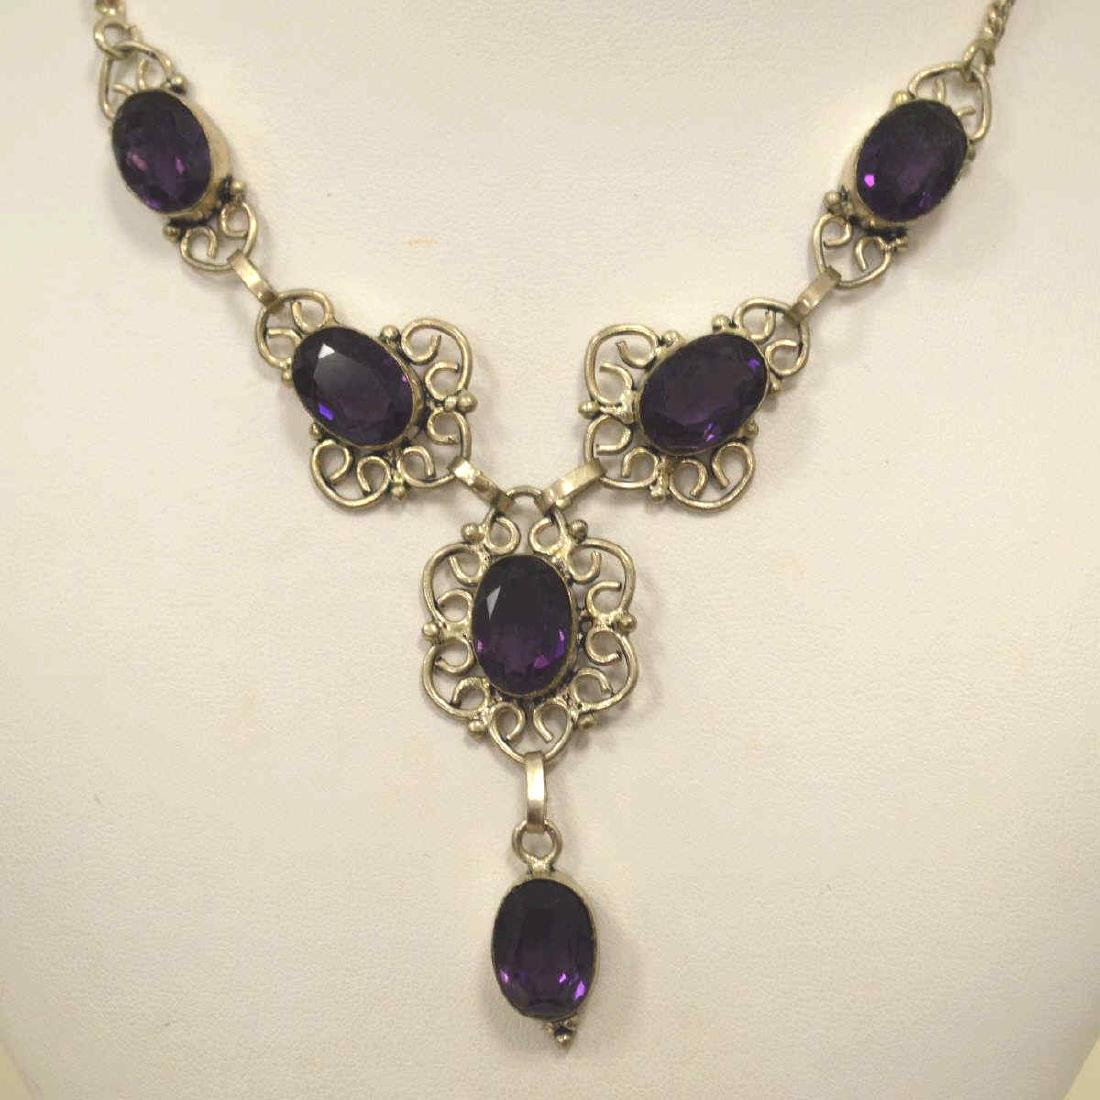 Sterling silver amethyst necklace - 2